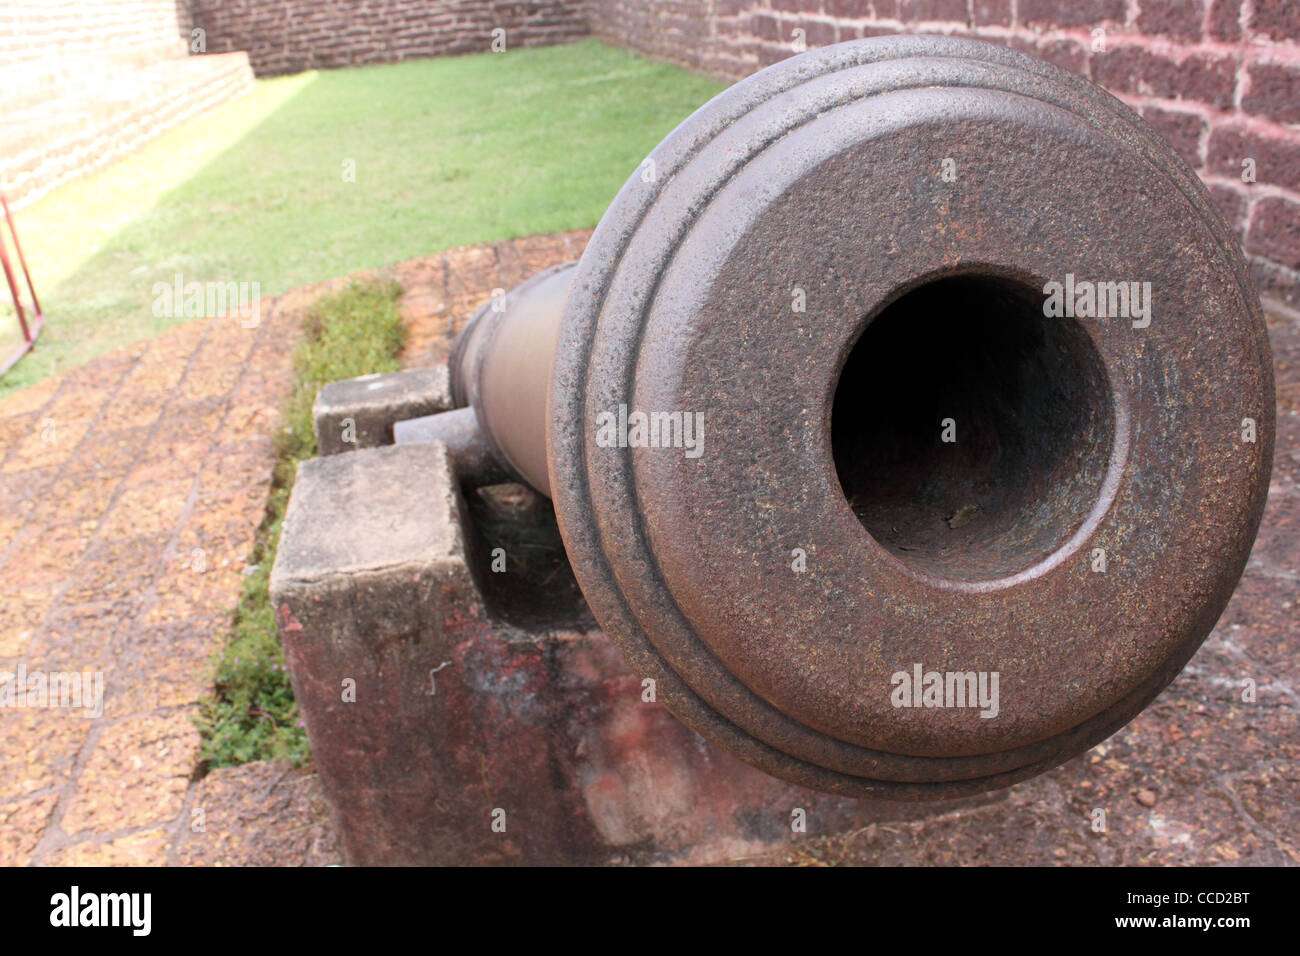 Medieval cannon used by the British at the kannur fort, kerala India - Stock Image